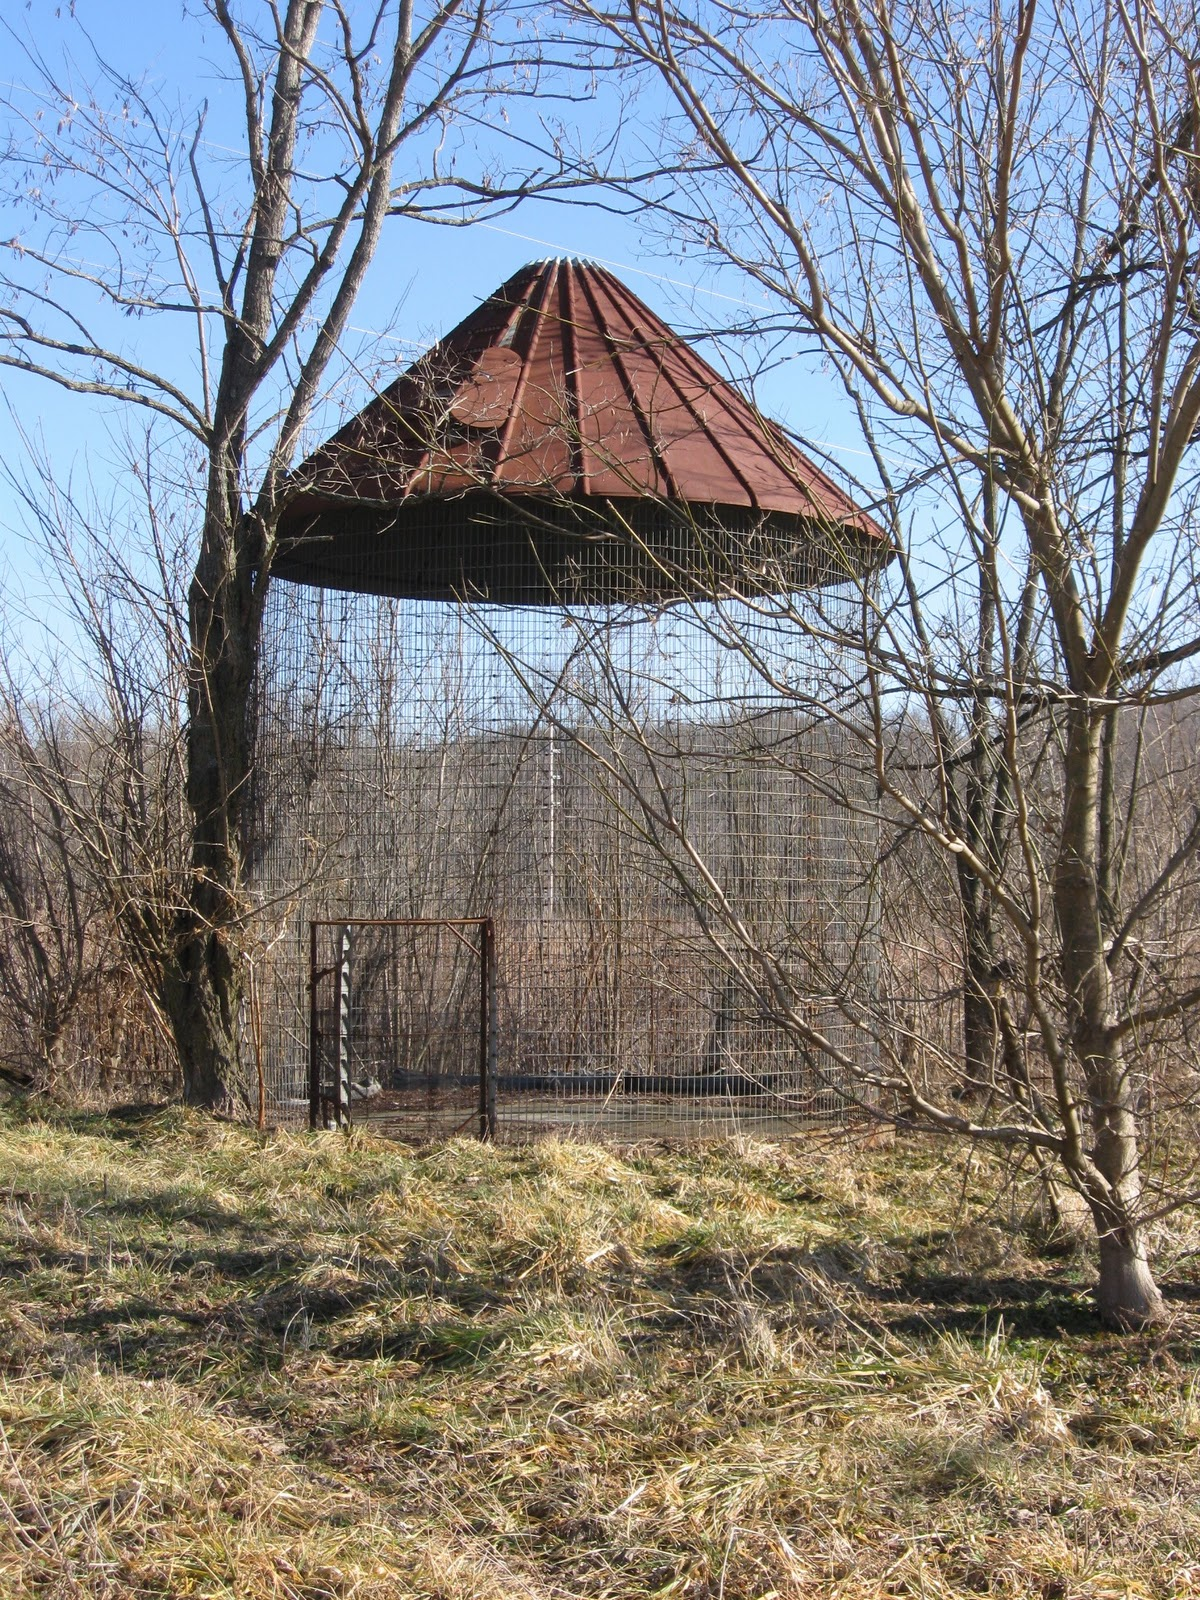 FOLKWAYS NOTEBOOK: VINTAGE CORN CRIB